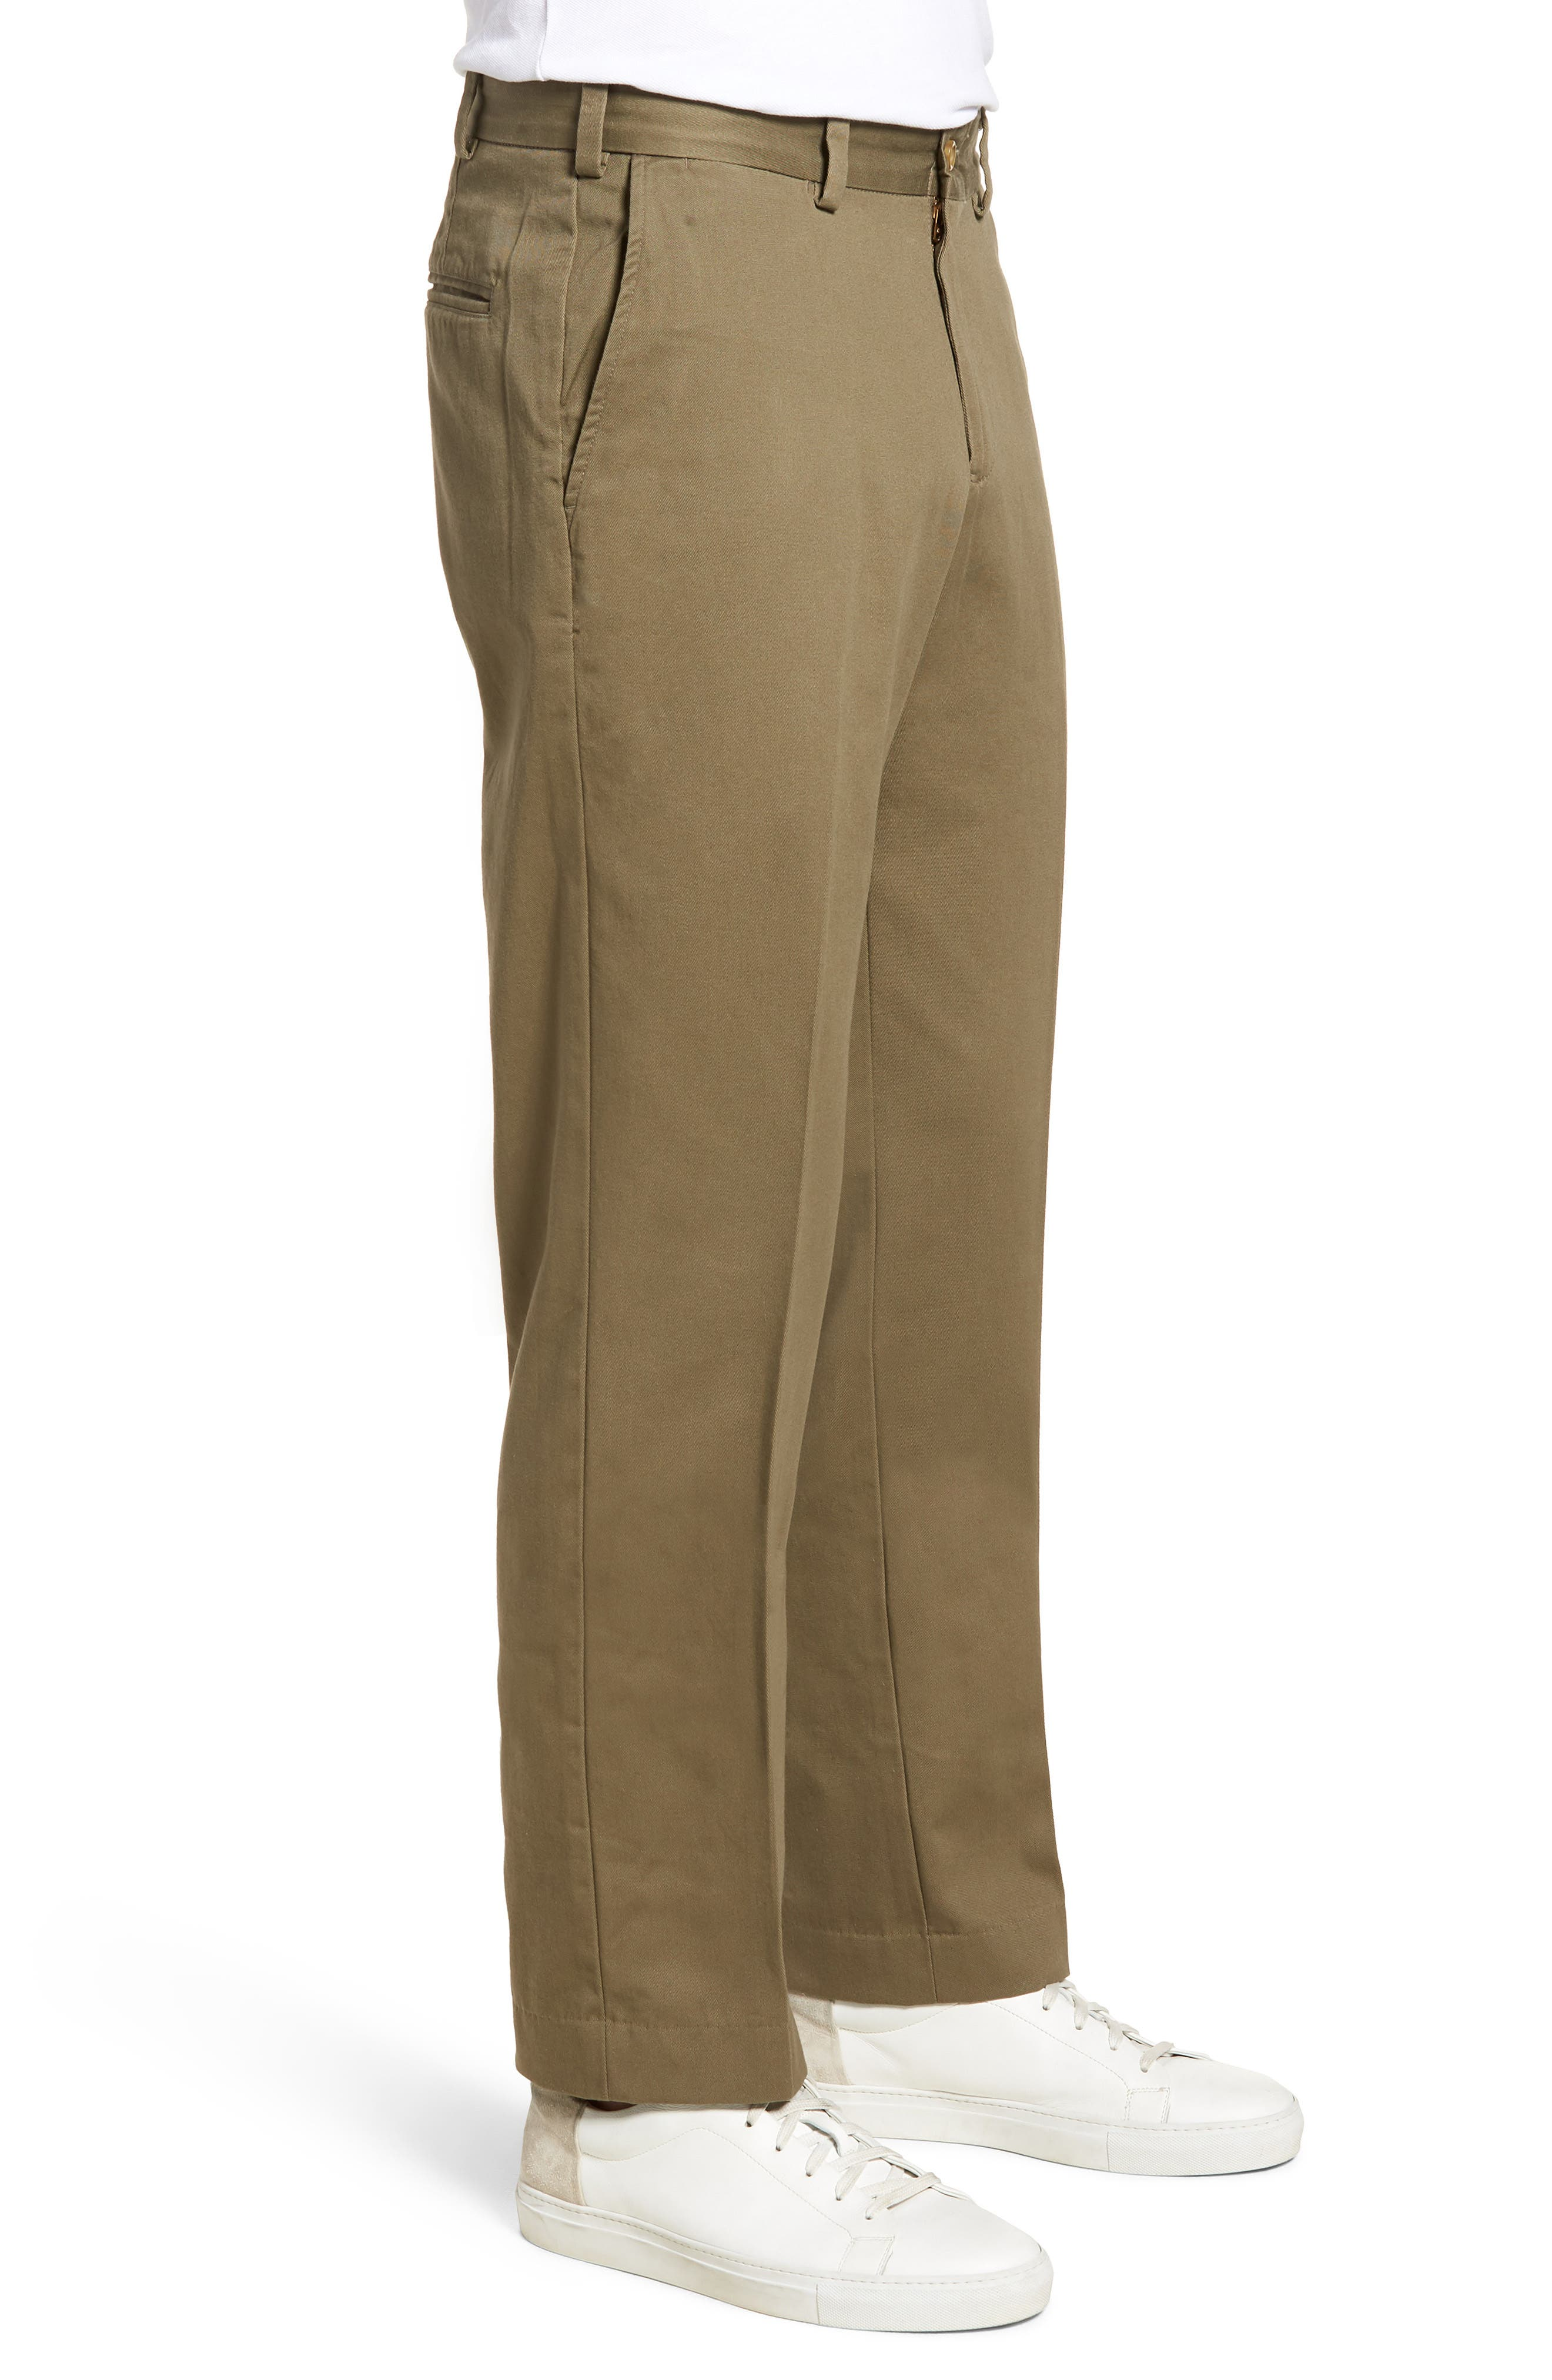 M3 Straight Fit Flat Front Vintage Twill Pants,                             Alternate thumbnail 3, color,                             330